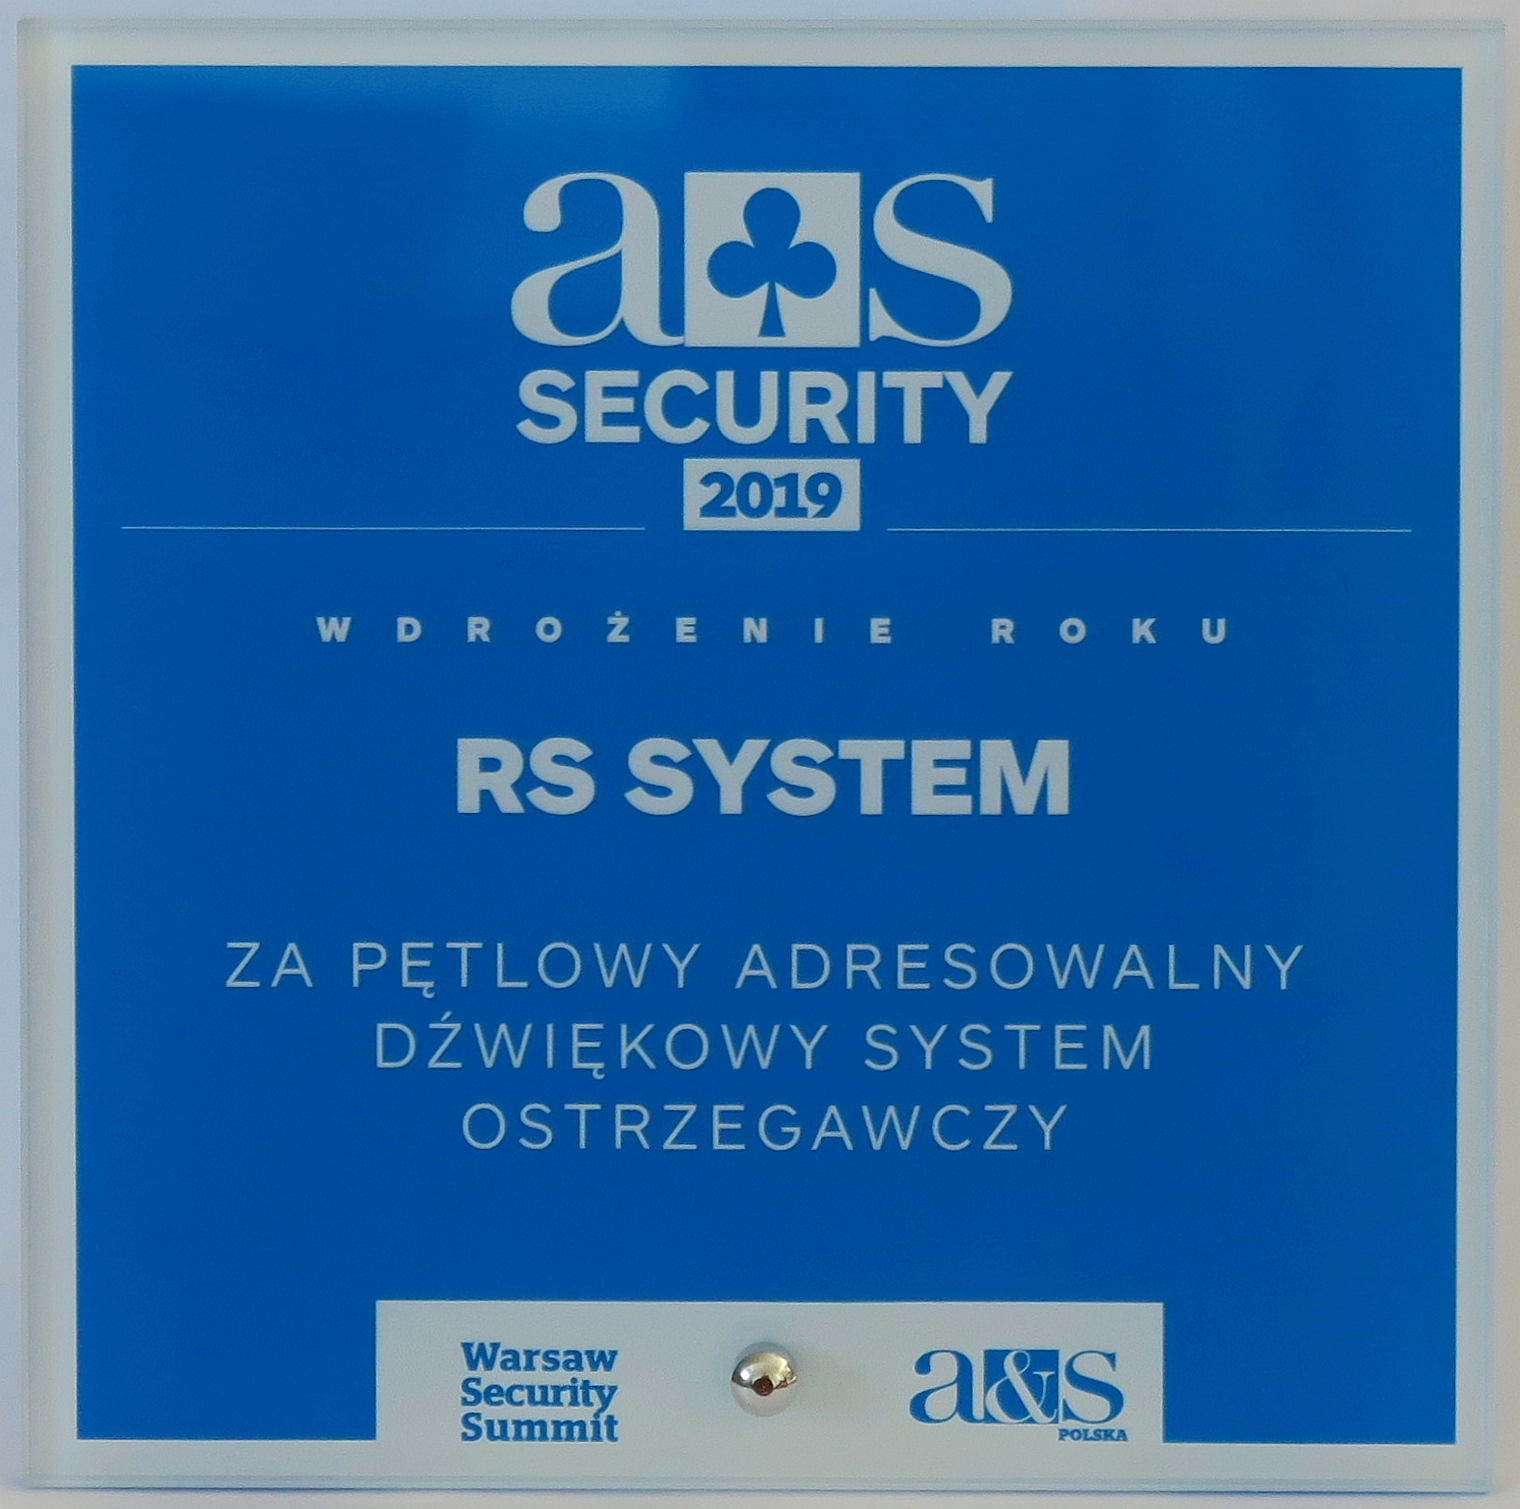 A & S SECURITY 2019 for the implementation of the year